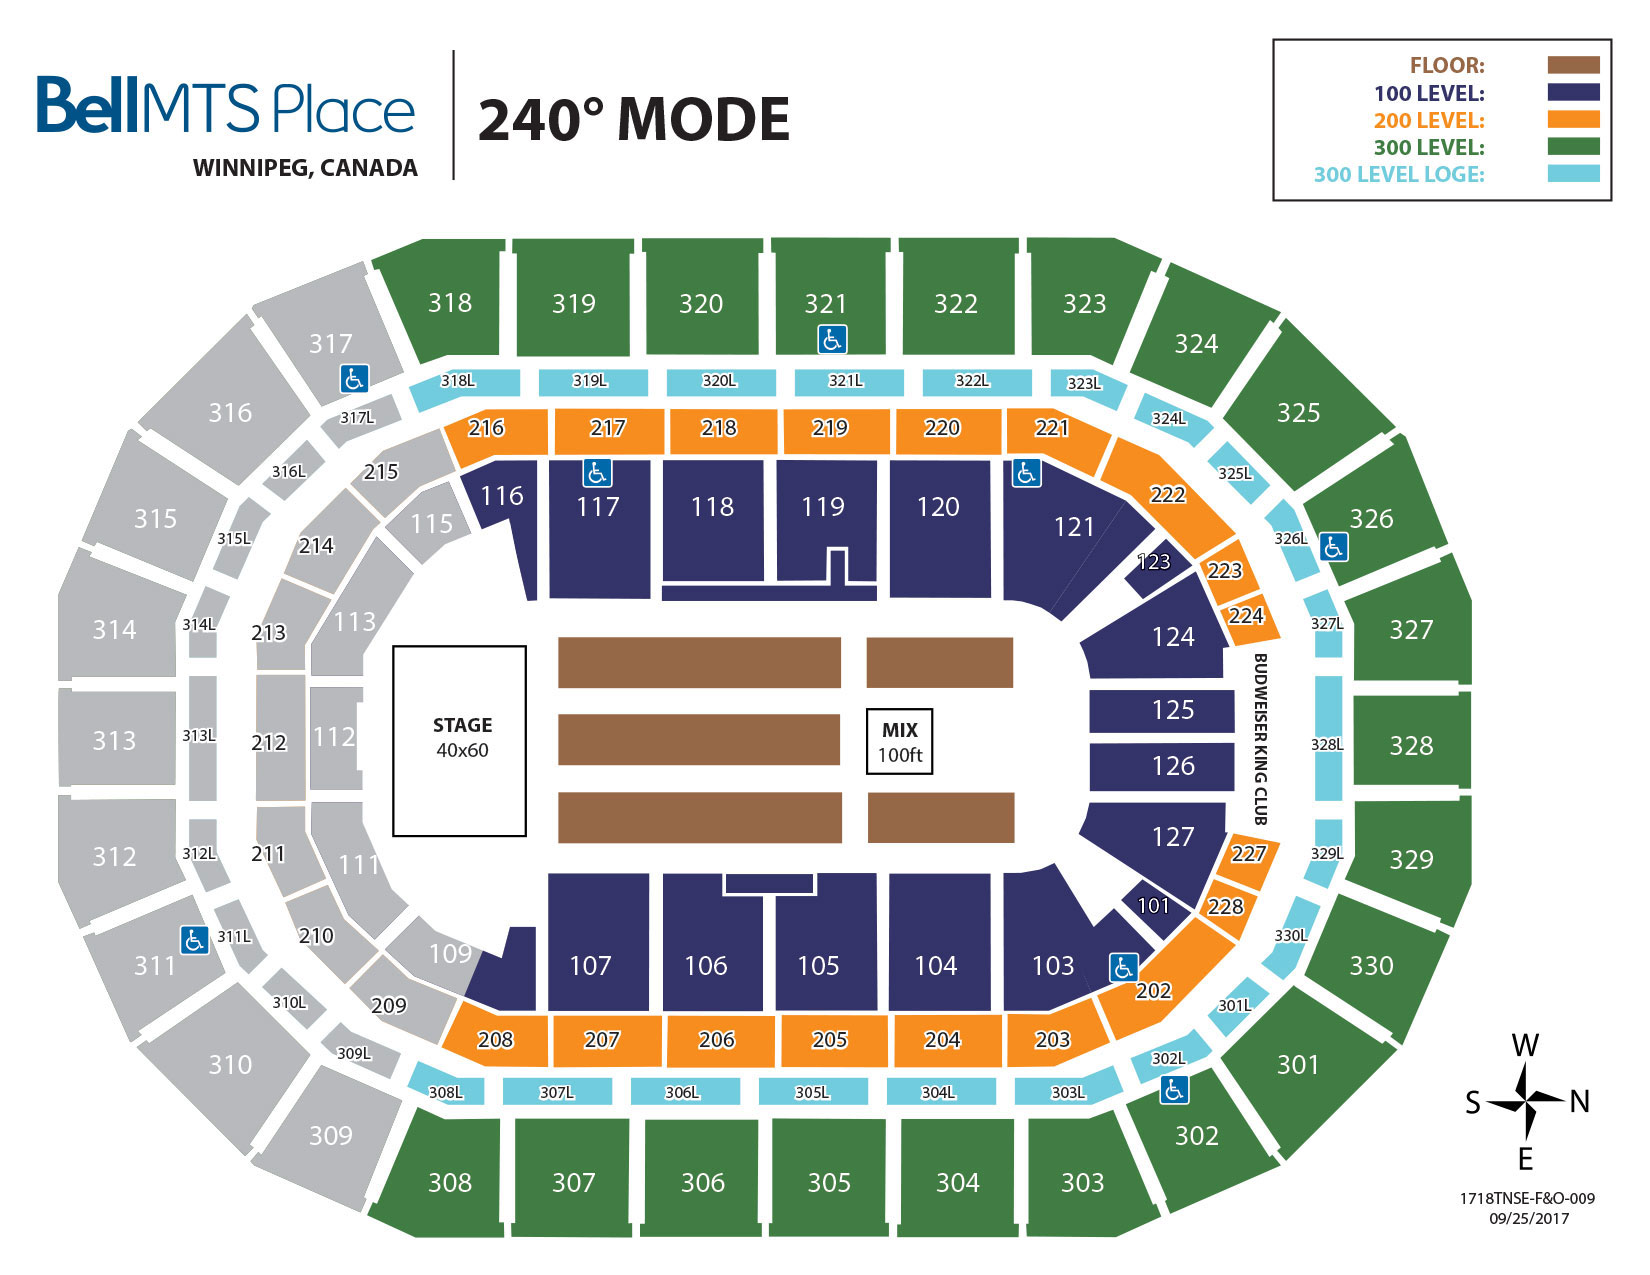 Bell MTS Place - 240 Mode Seating